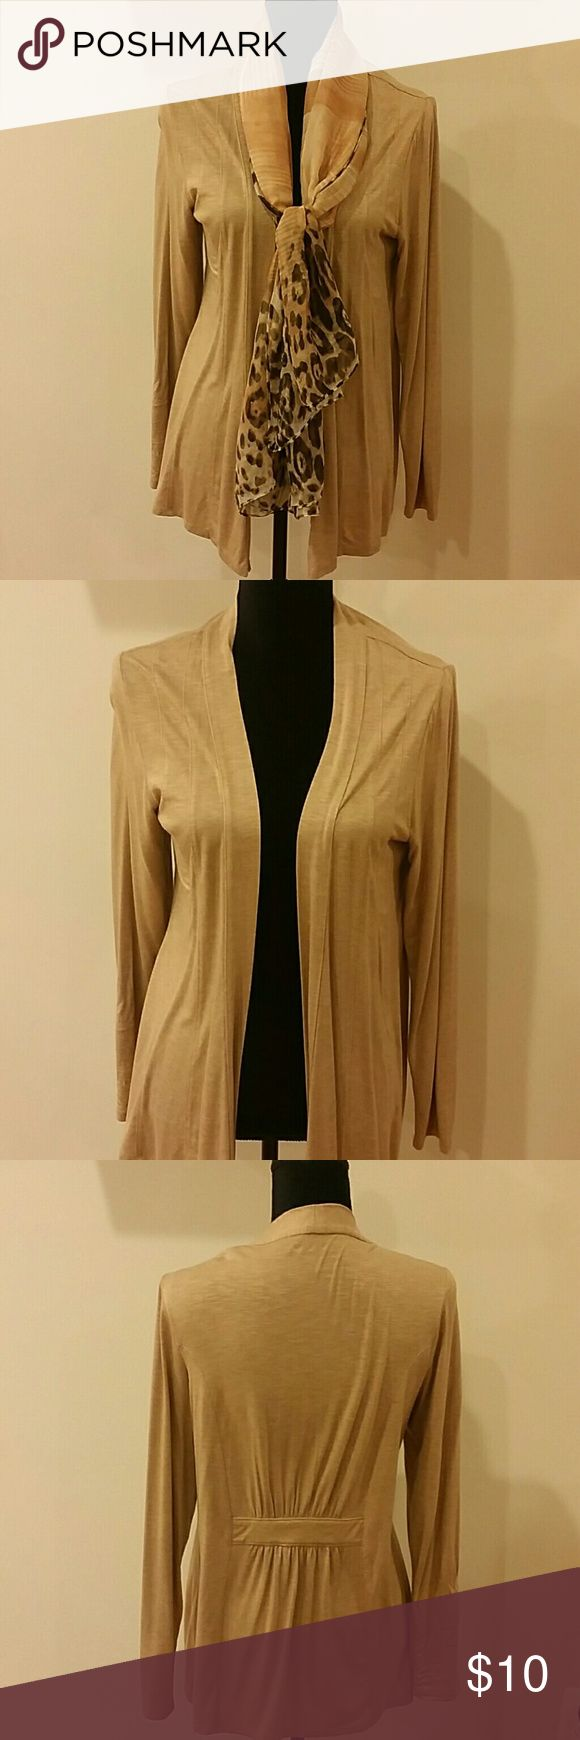 Coldwater Creek size S cardigan Soft Beige cardigan with long sleeves. No trades 20 % OFF with 3 plus bundles. Coldwater Creek  Tops